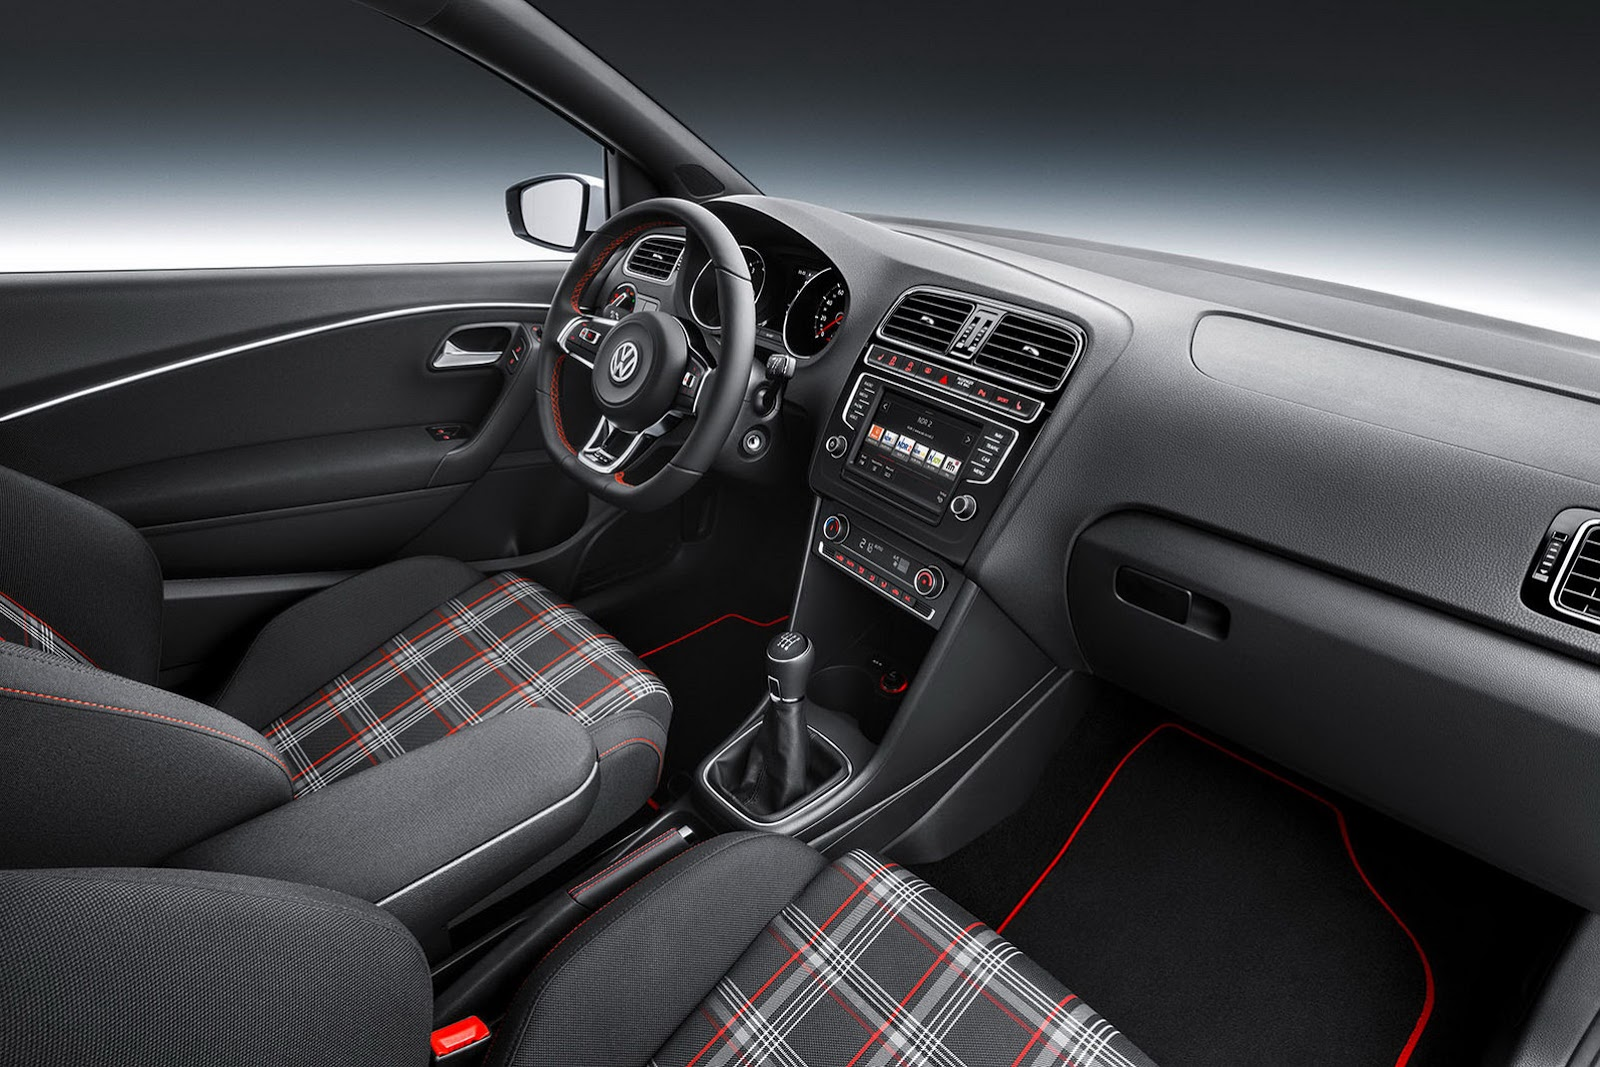 Innenausstattung Vw Polo 2015 Vw Polo Gti Facelift Gets New 190ps 1 8l Turbo And